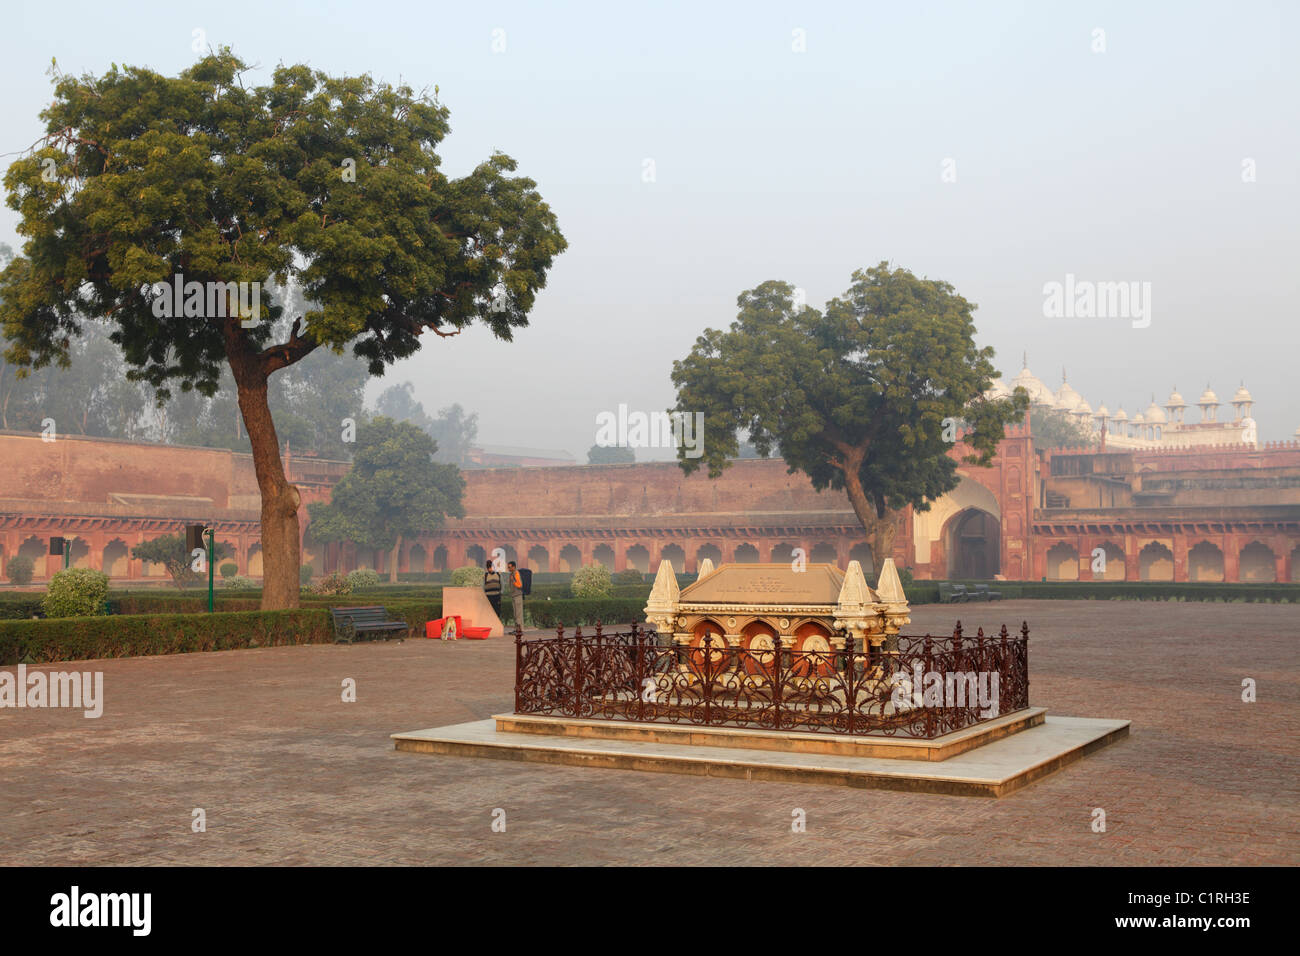 Tomb of John Russell Colvin inside the Red Fort of Agra, India - Stock Image